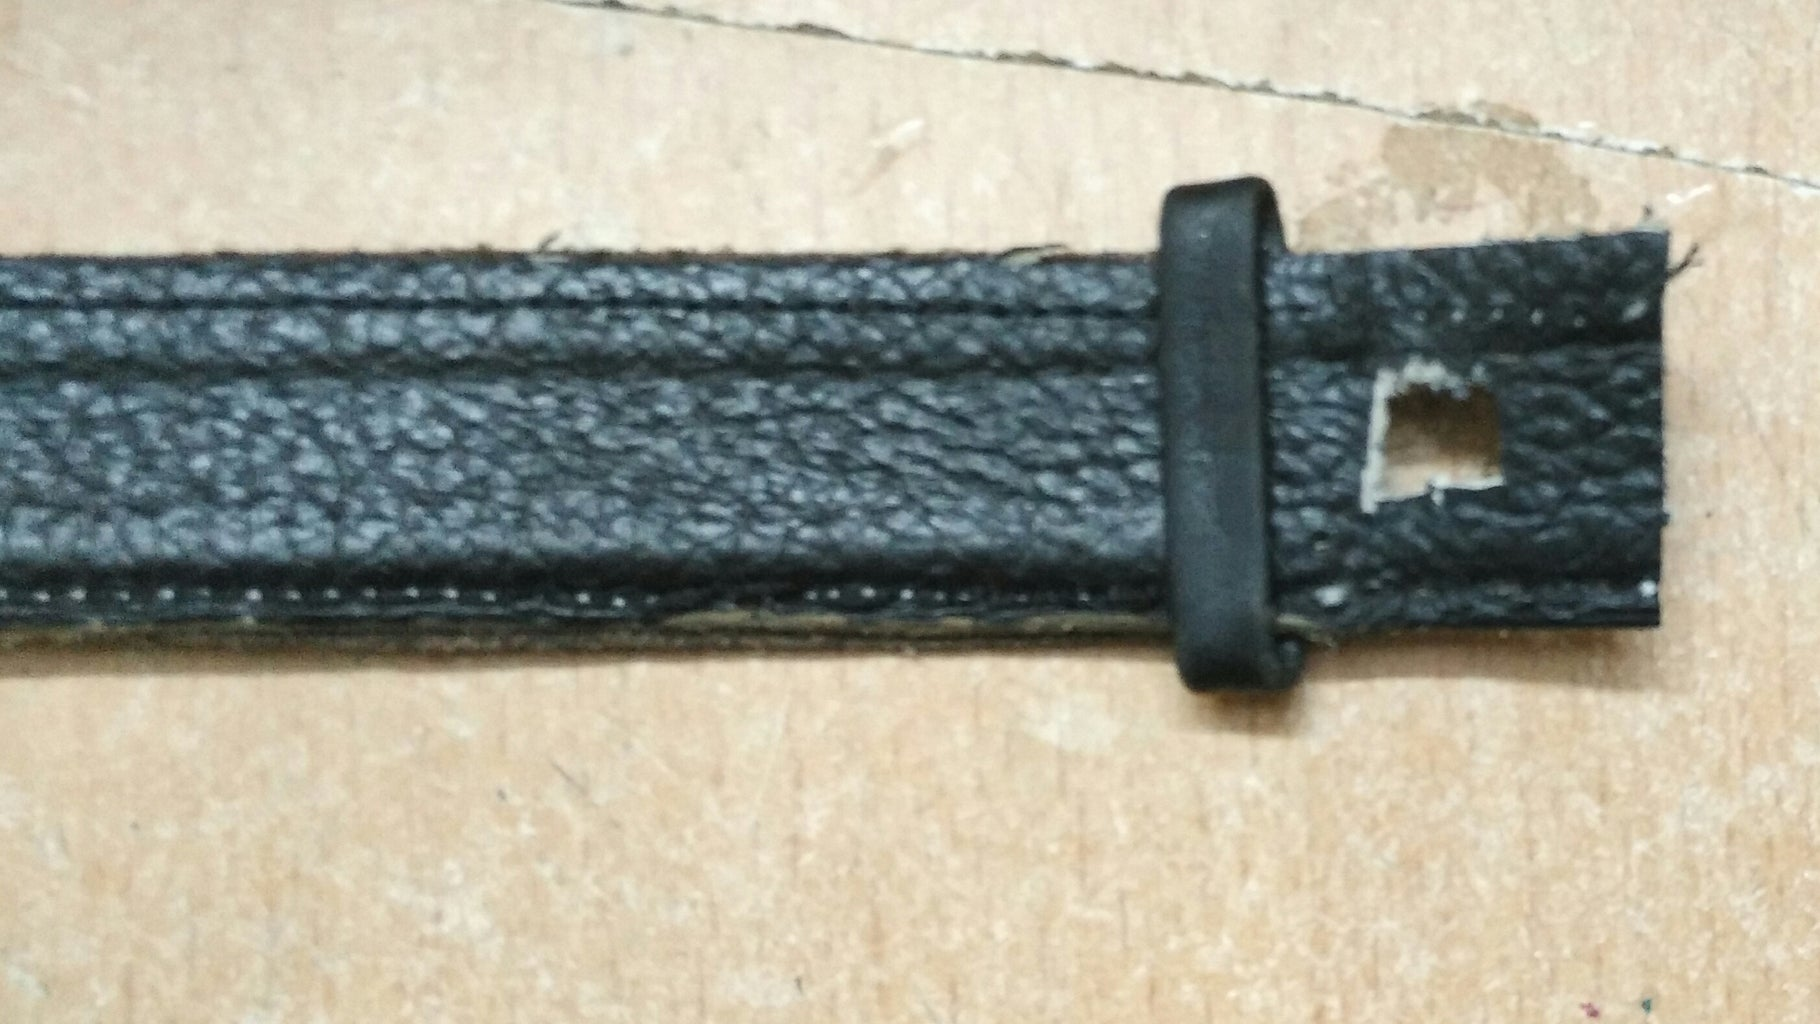 The Buckle Side!!